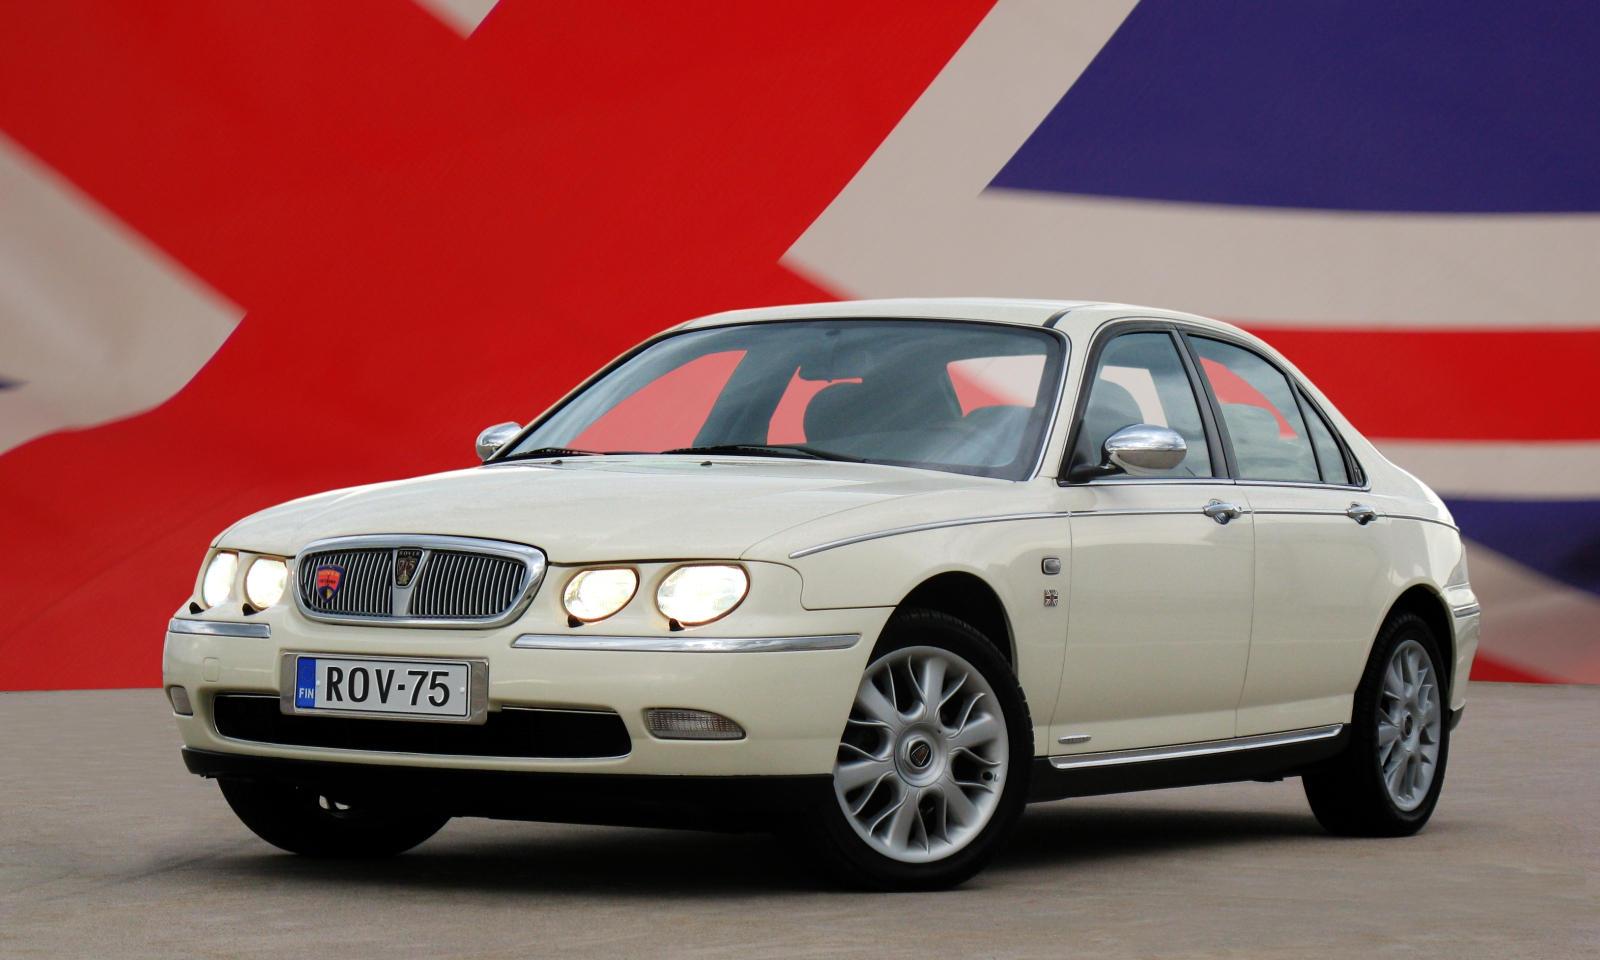 [Image: Rover_75.jpg]